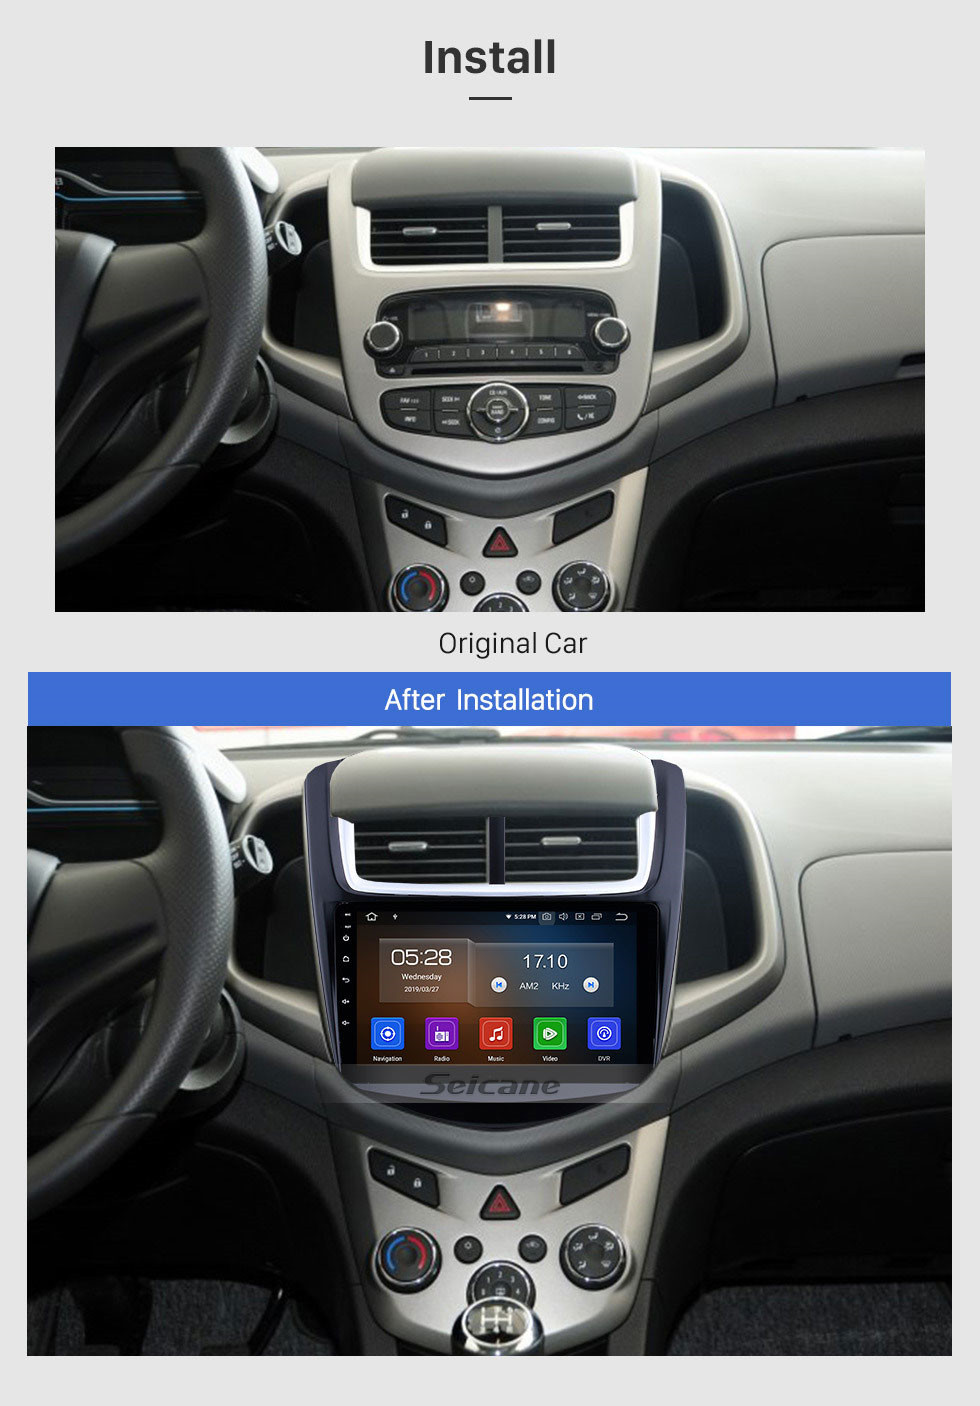 Seicane 9 inch 2014 Chevy Chevrolet Aveo HD Touch Screen GPS Radio Replacement Navigation Bluetooth Music WiFi TV Tuner support DVR AUX DVD Player 3G Steering Wheel Control